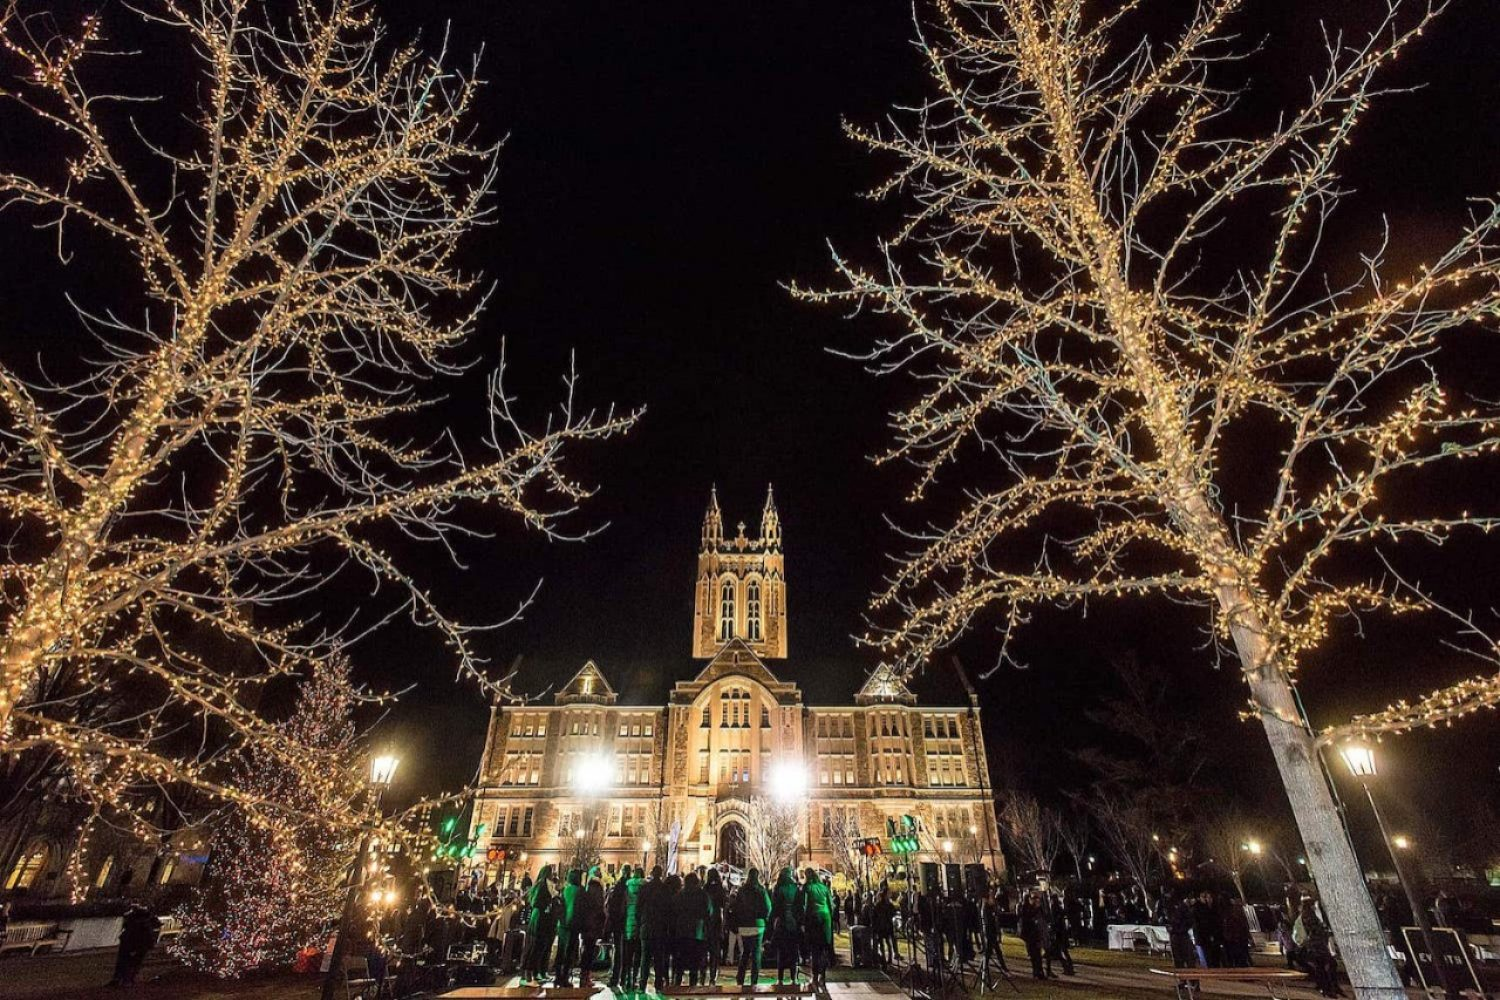 Gasson Hall at Christmas